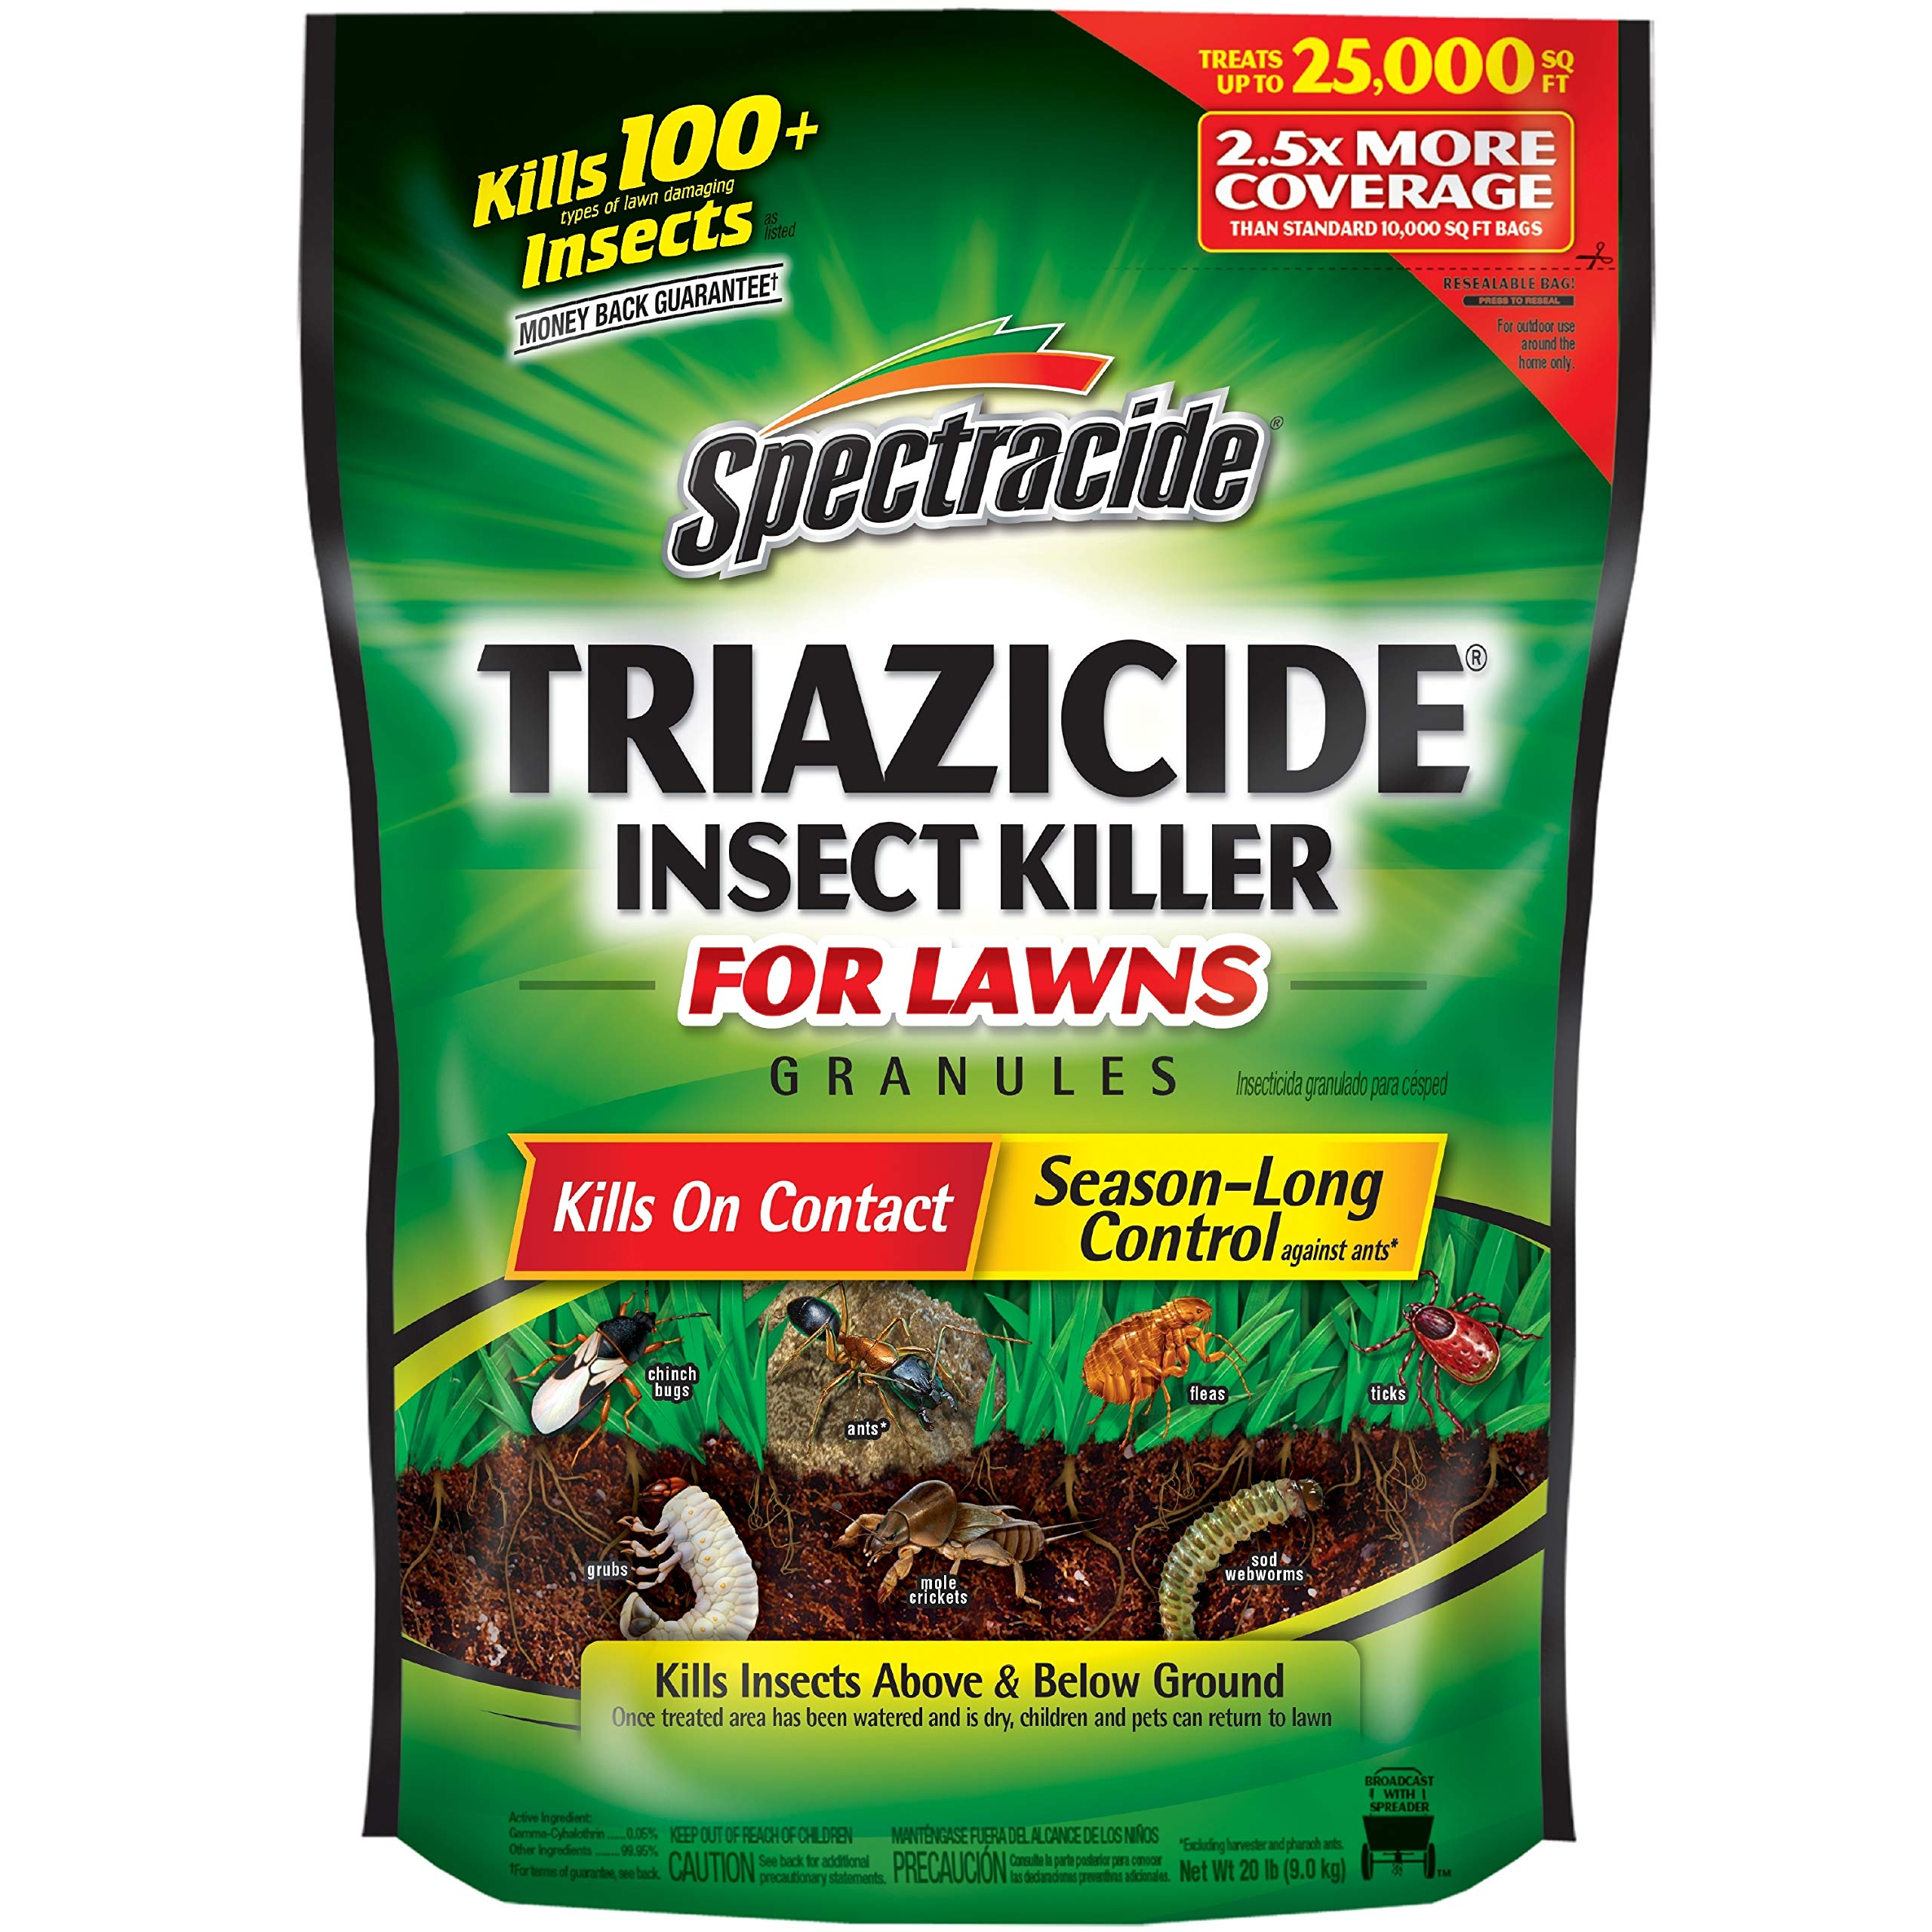 Spectracide Triazicide Insect Killer For Lawns Granules, 20-Pound, 2-Pack by Spectracide